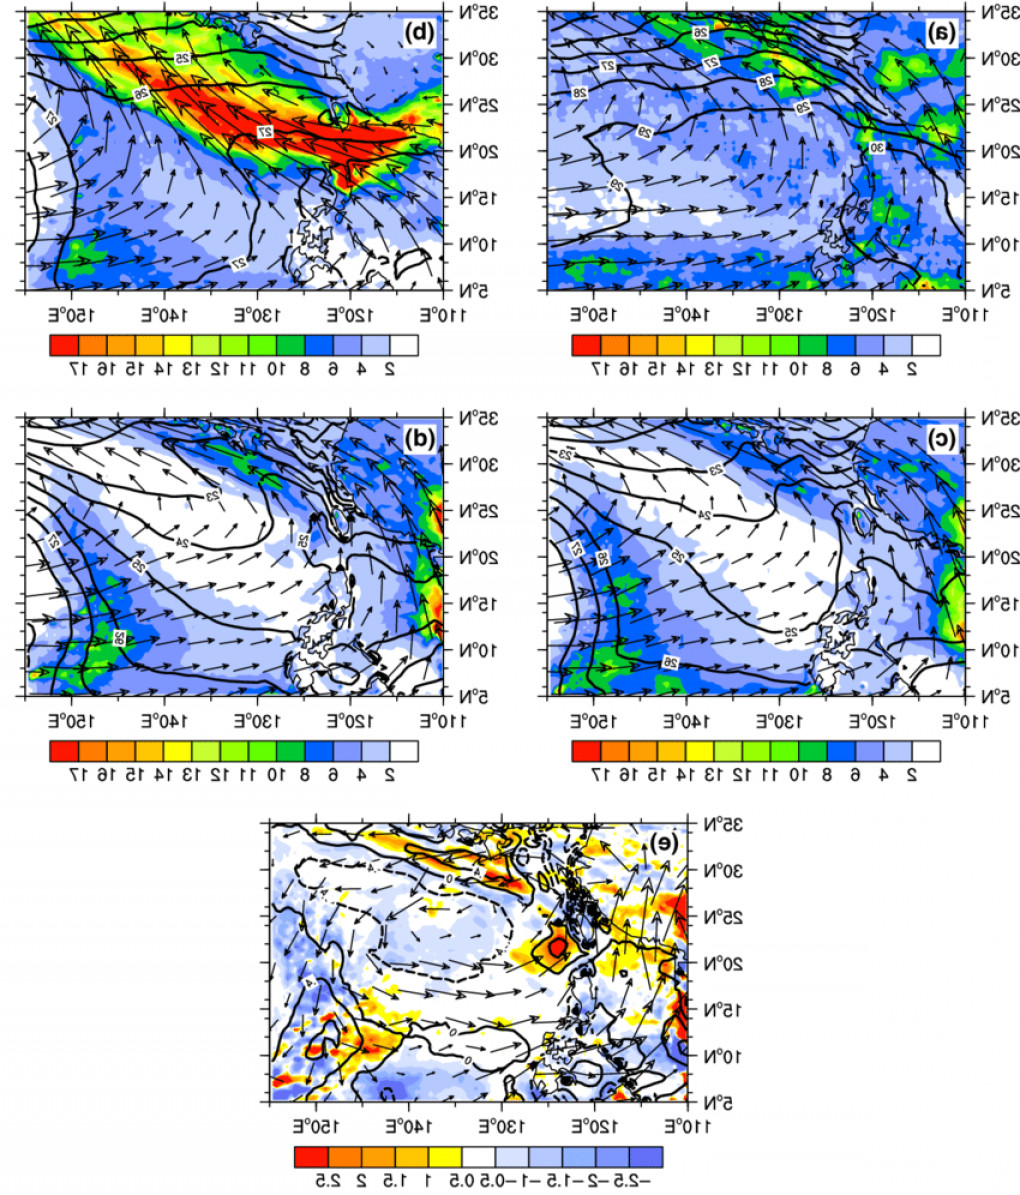 Wind Vector Field: Spatial Pattern Of Wind Field At Hpa Vector M S Rainfall Shaded Mm Day Andfig